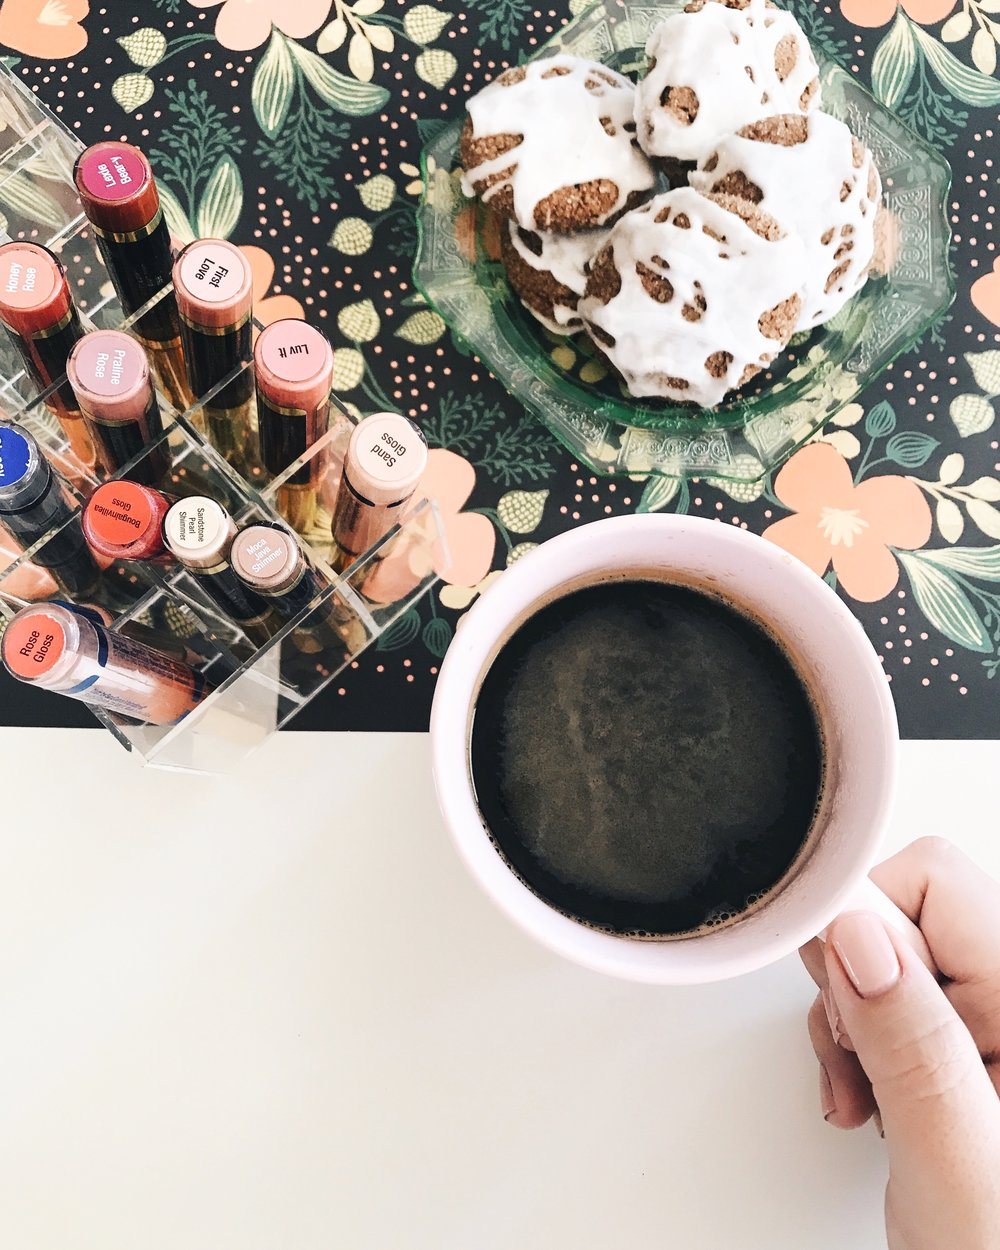 SeneGence LipSense morning coffee